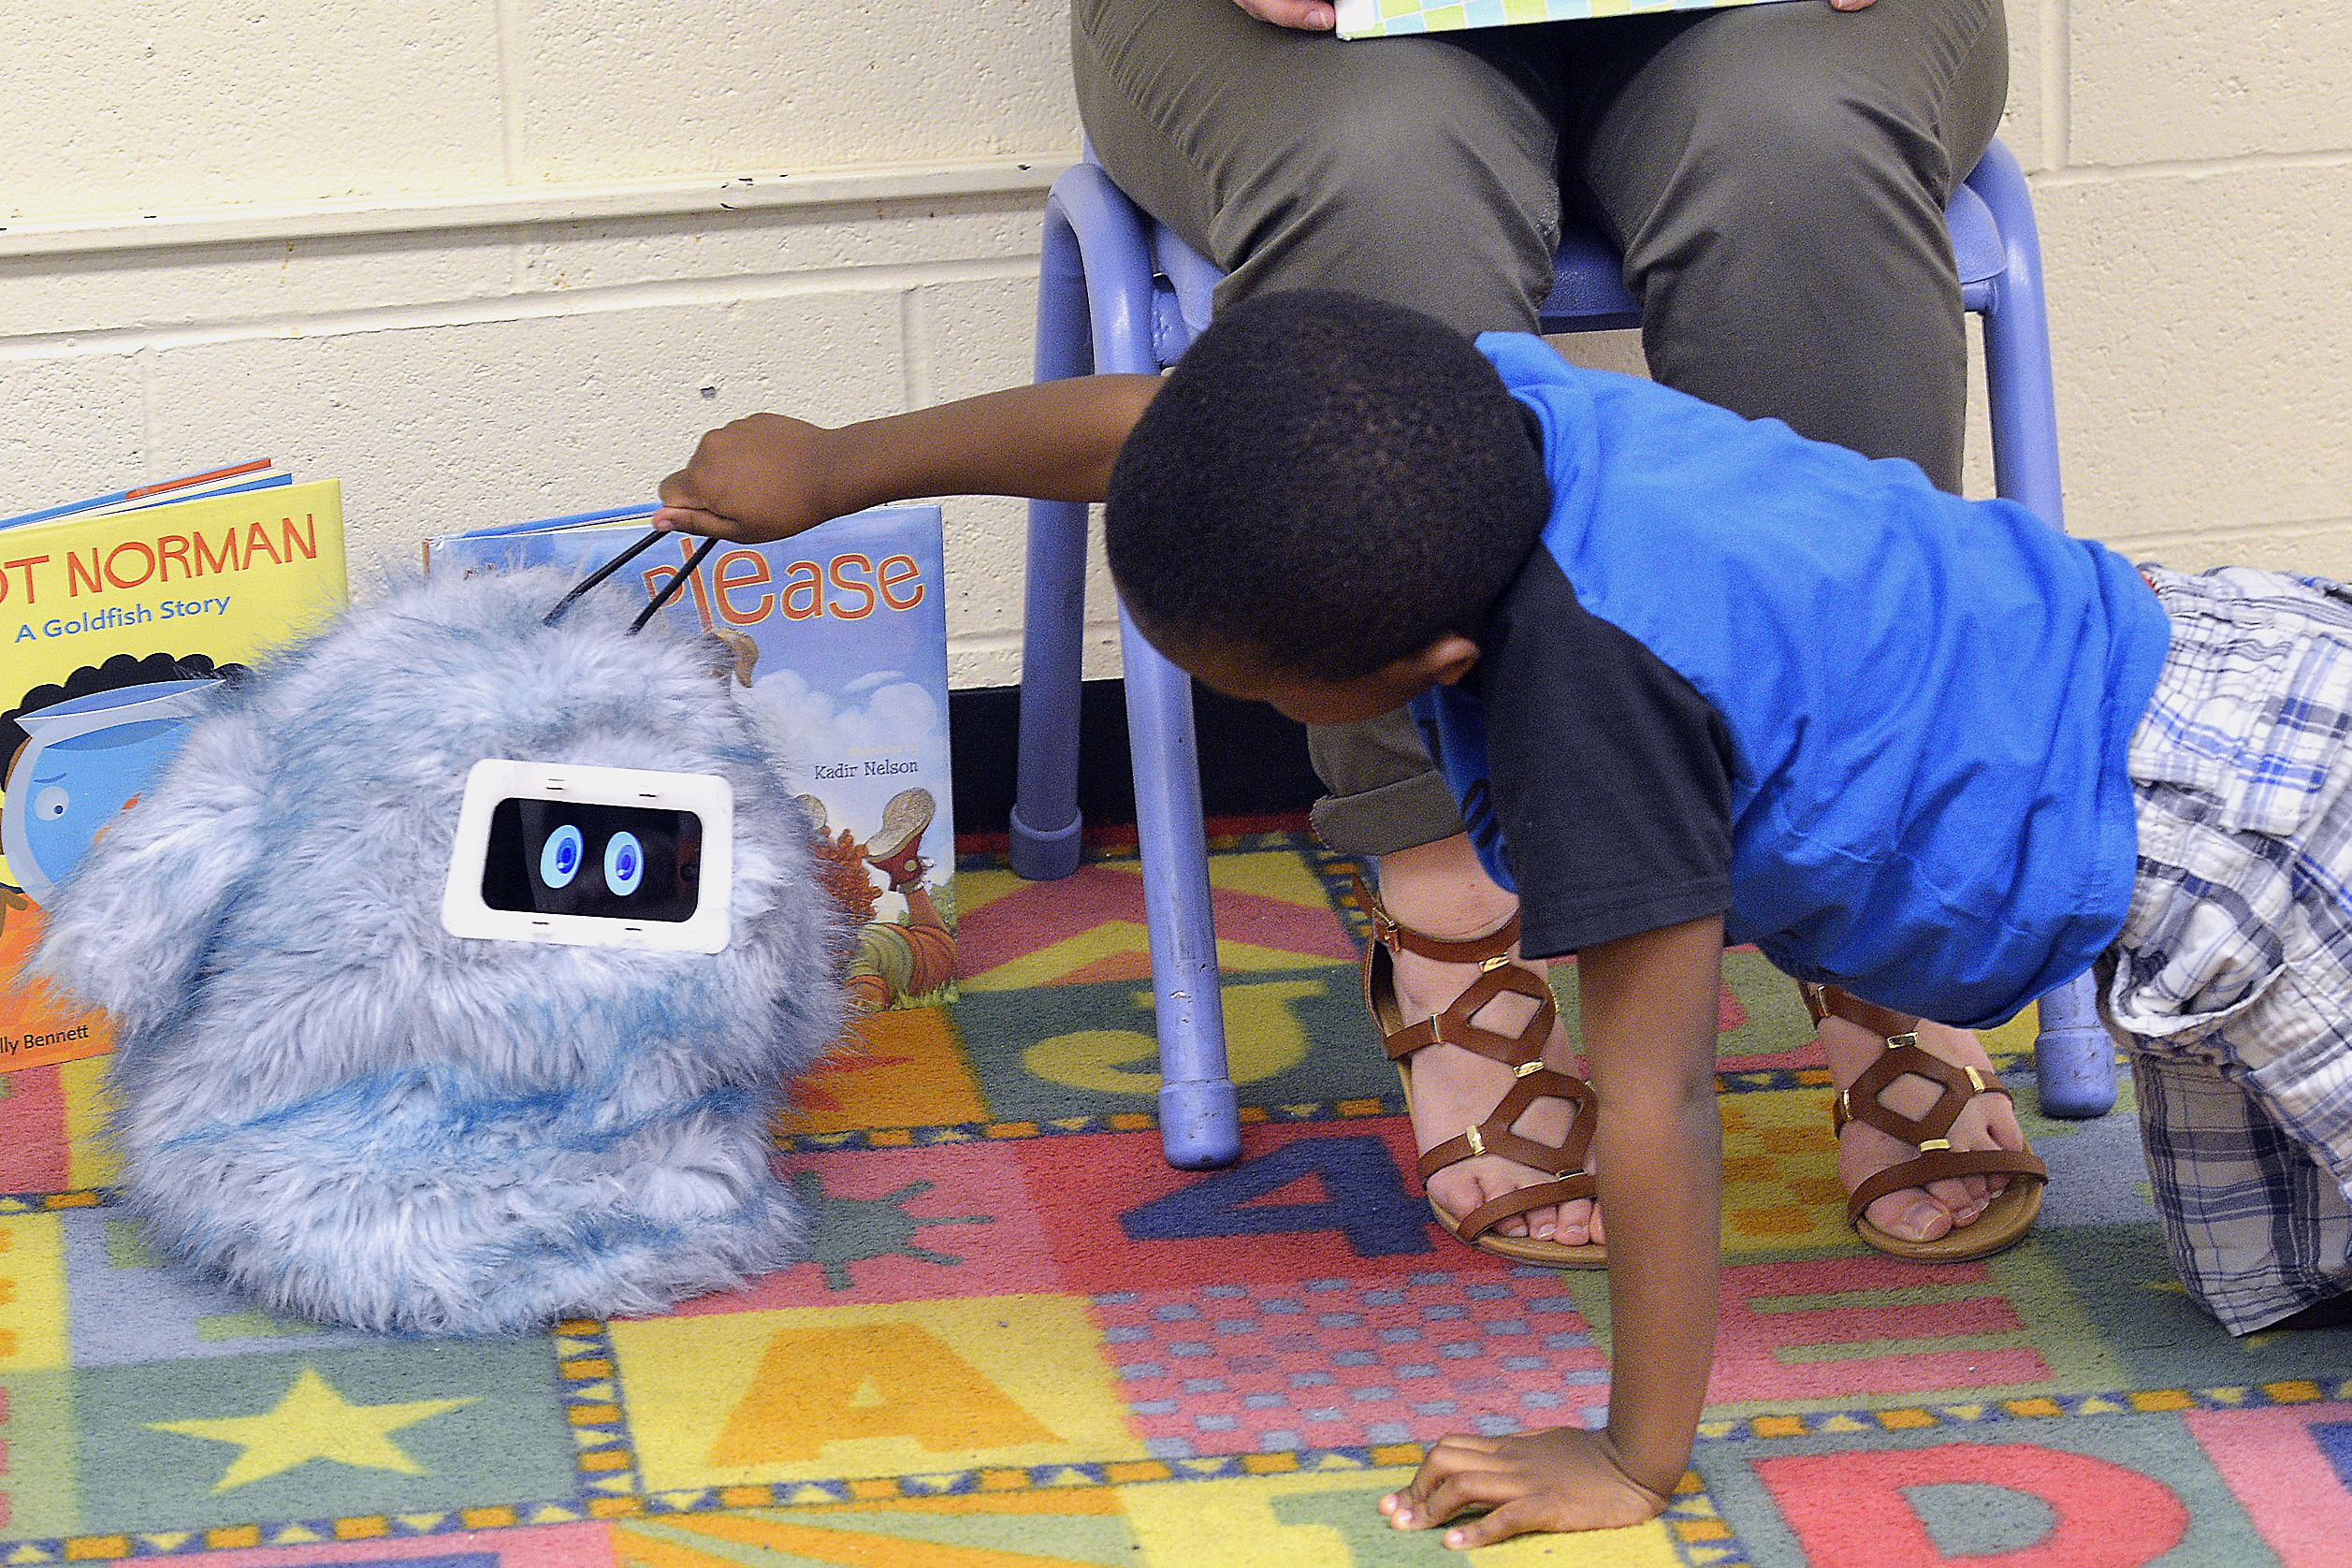 story telling to enhance social Video games may help children with autism who have trouble communicating improve their social skills.